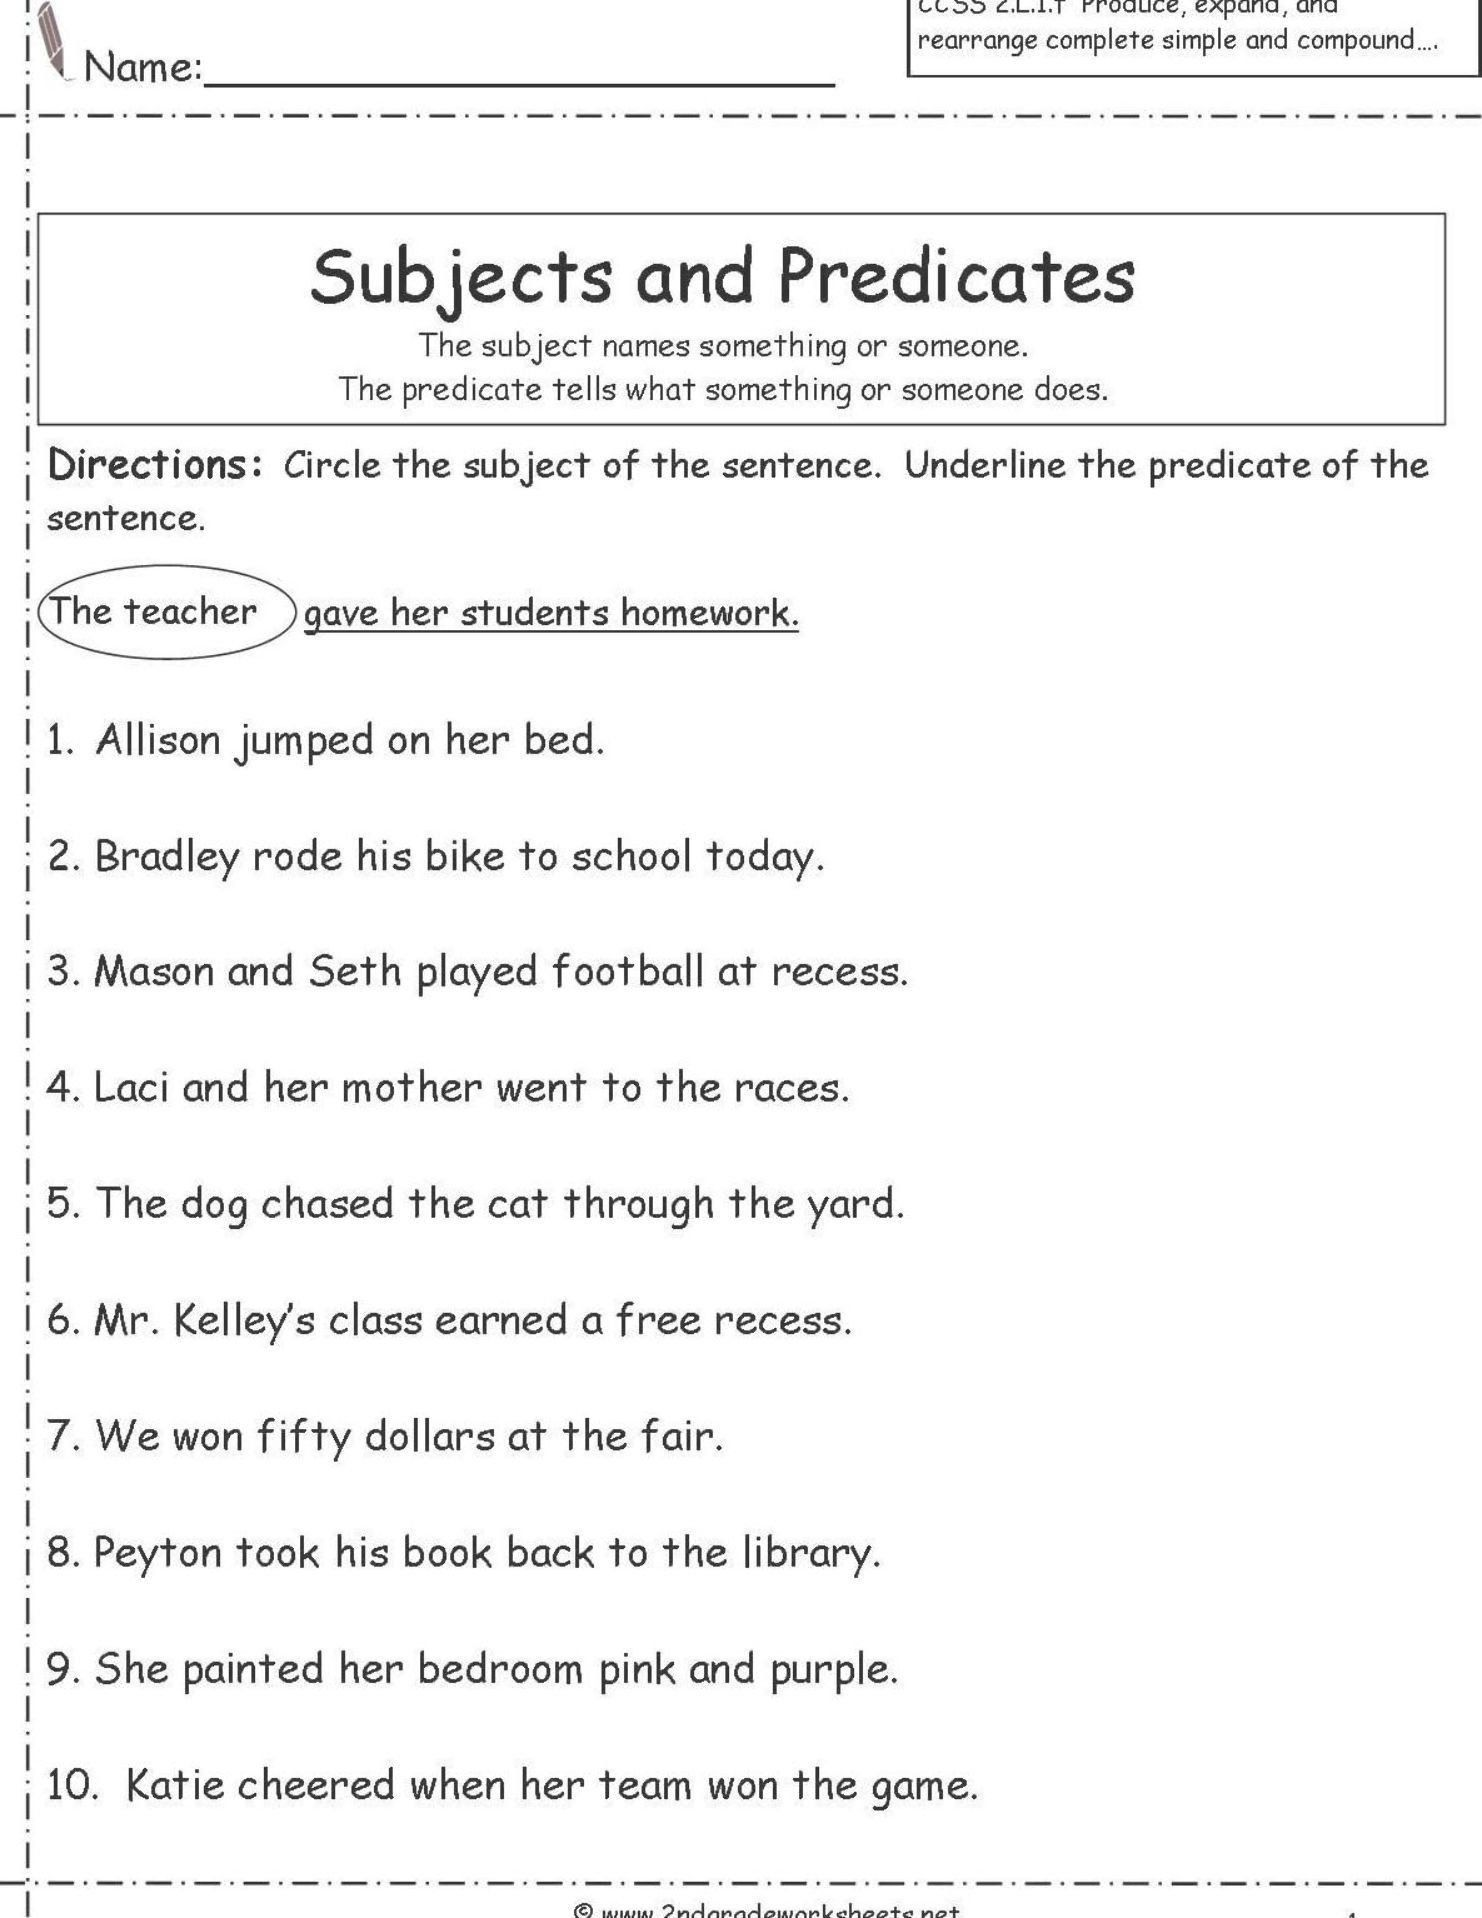 medium resolution of Dictionary Skills Worksheet 3rd Grade Subject and Predicate Worksheets for  Second Grade   Subject and predicate worksheets